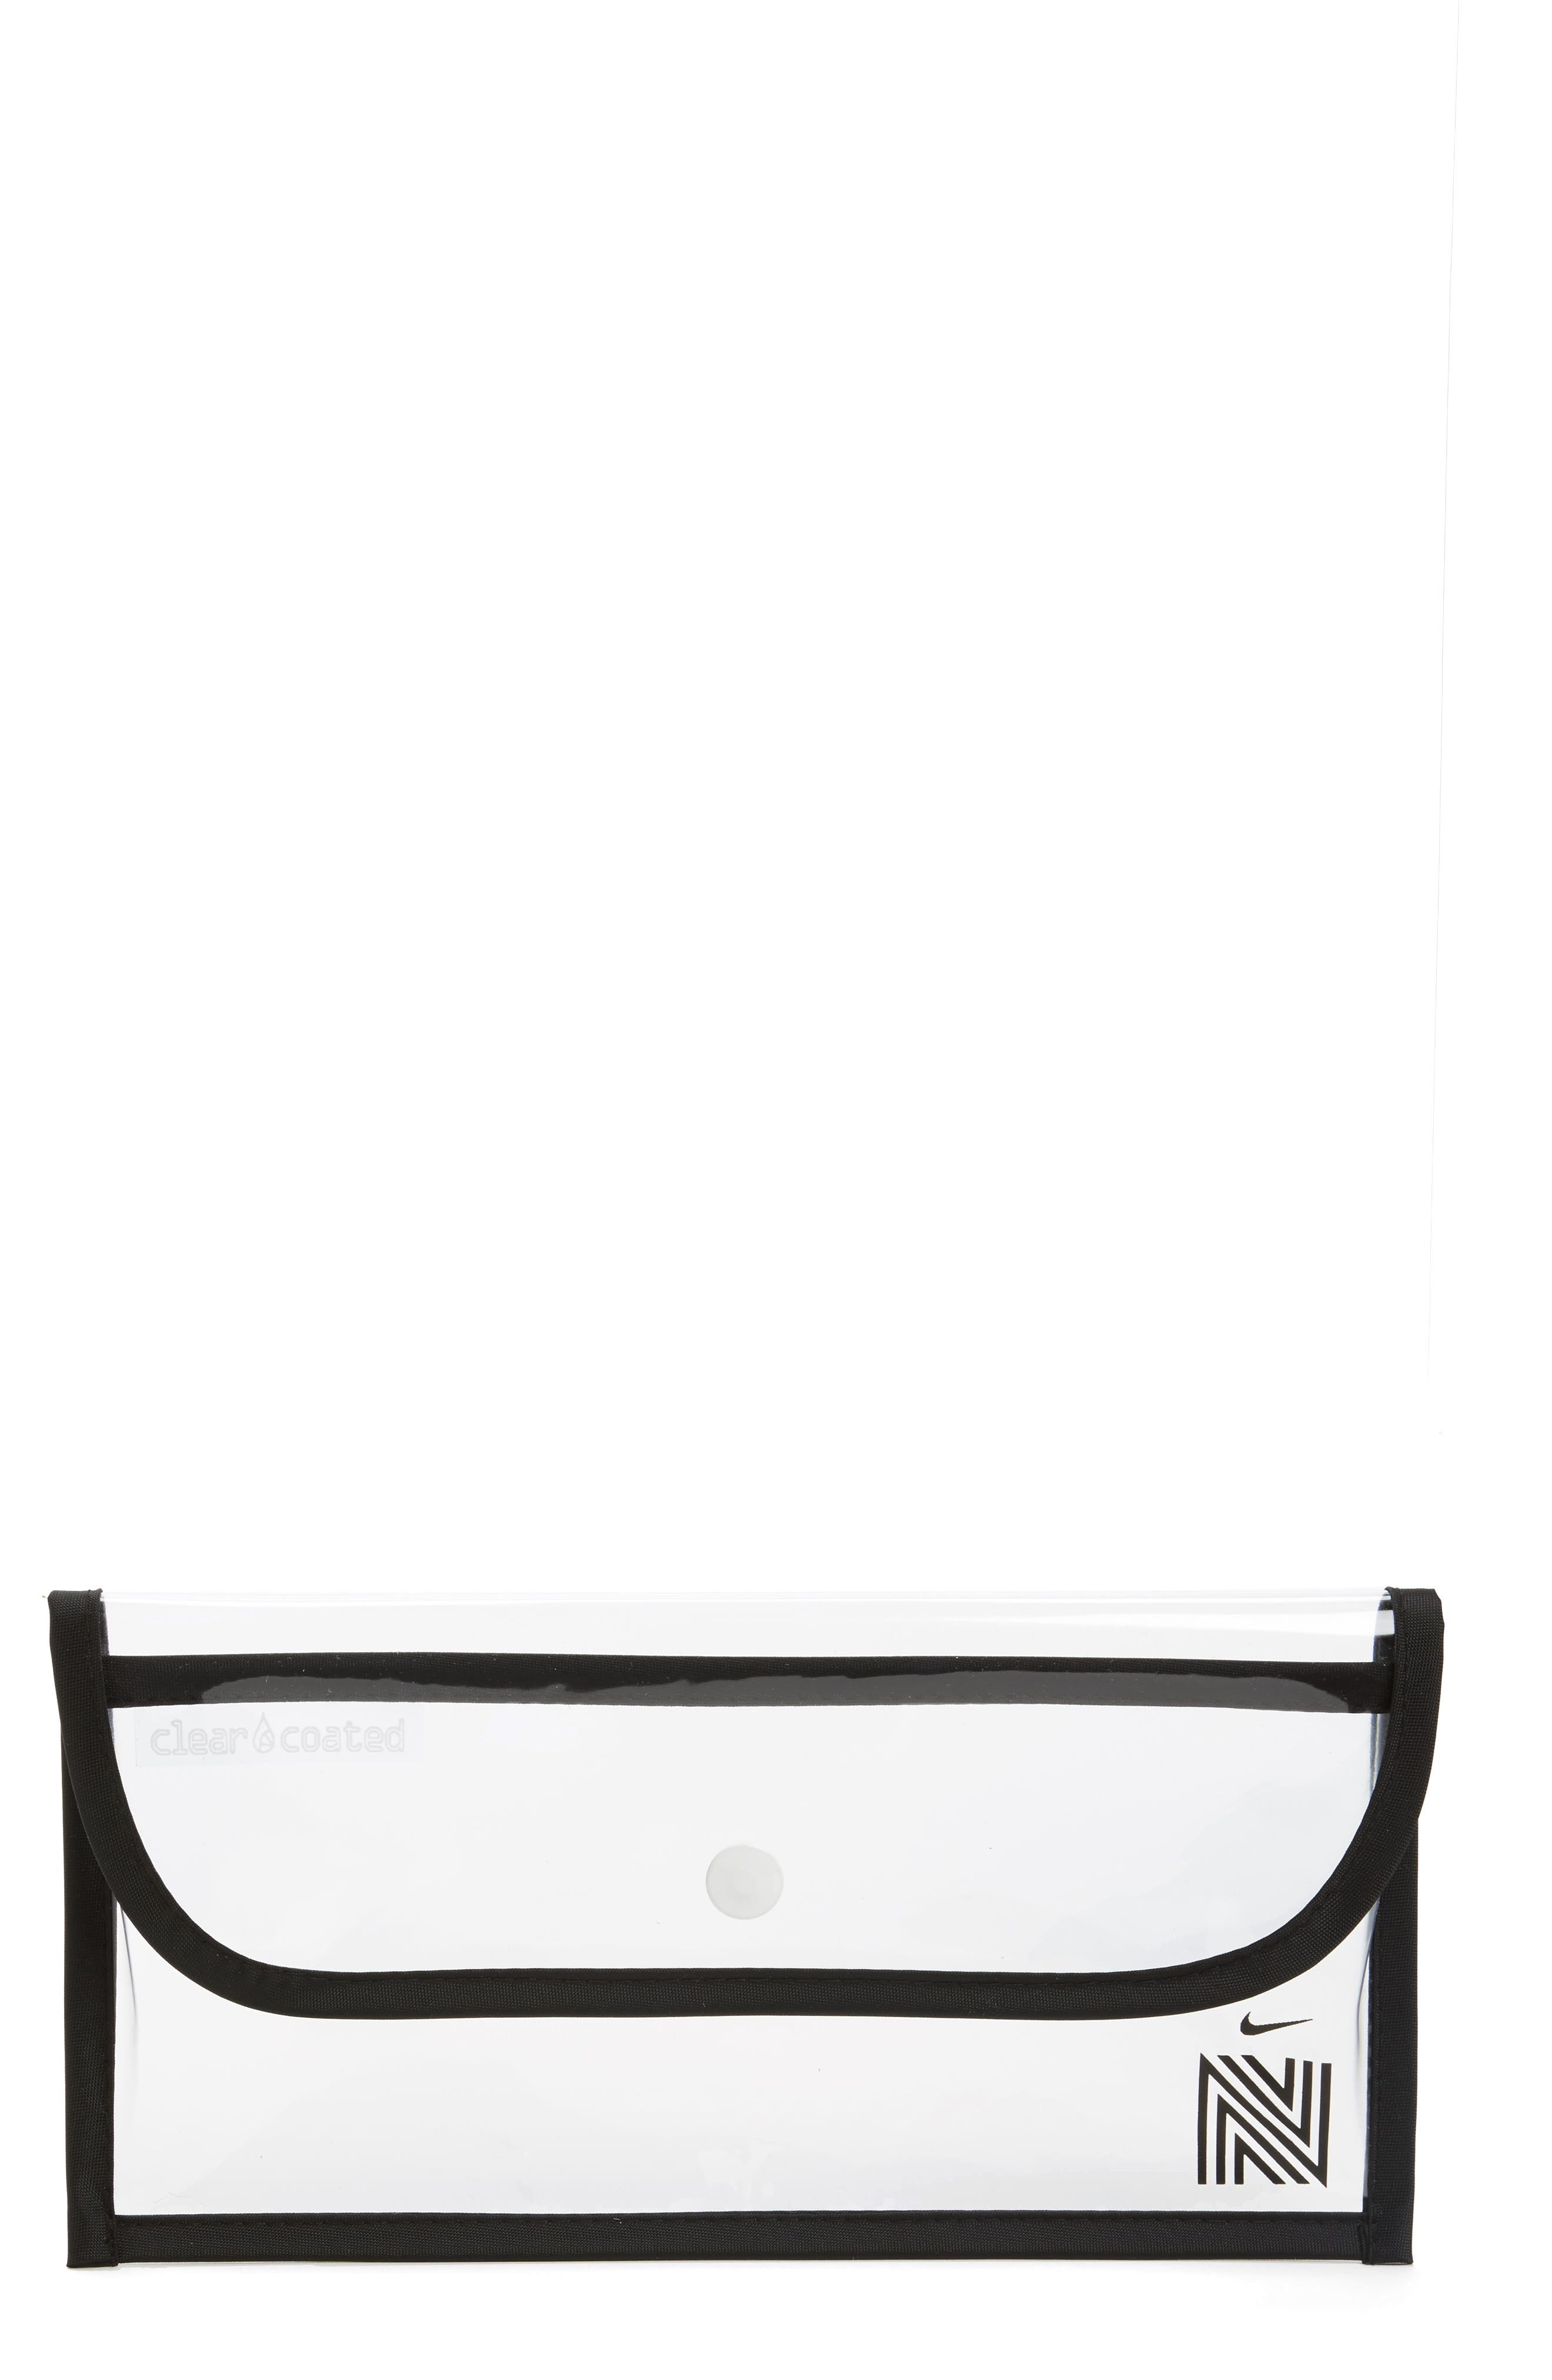 THREE POTATO FOUR Clear Coated Nordstrom x Nike Translucent Clutch, Main, color, 960